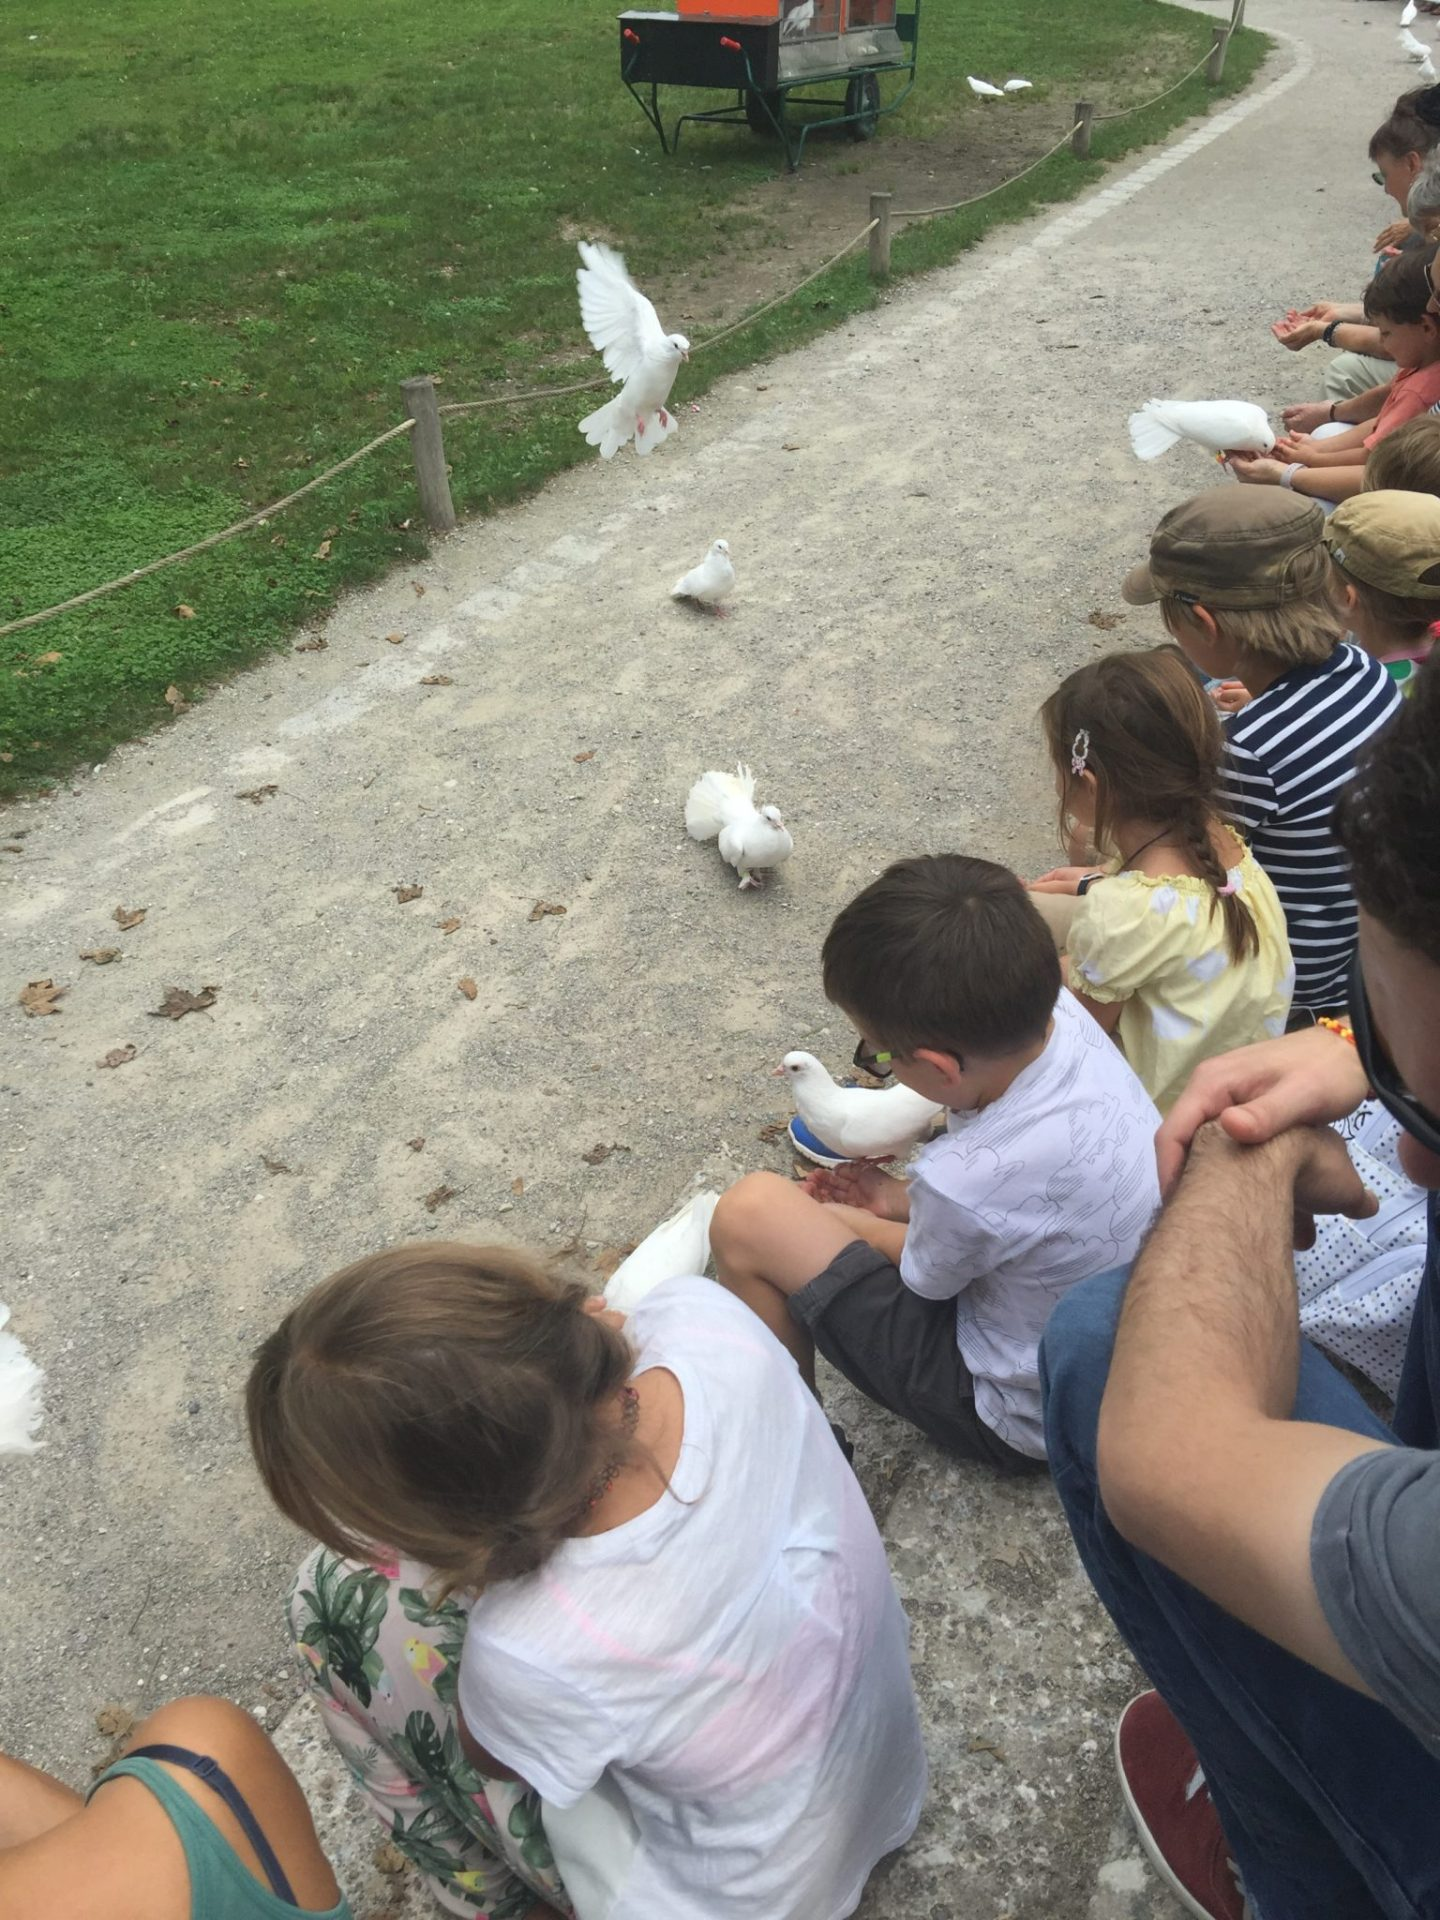 Feeding the acrobatic pigeons at the Hellabrunn Zoo